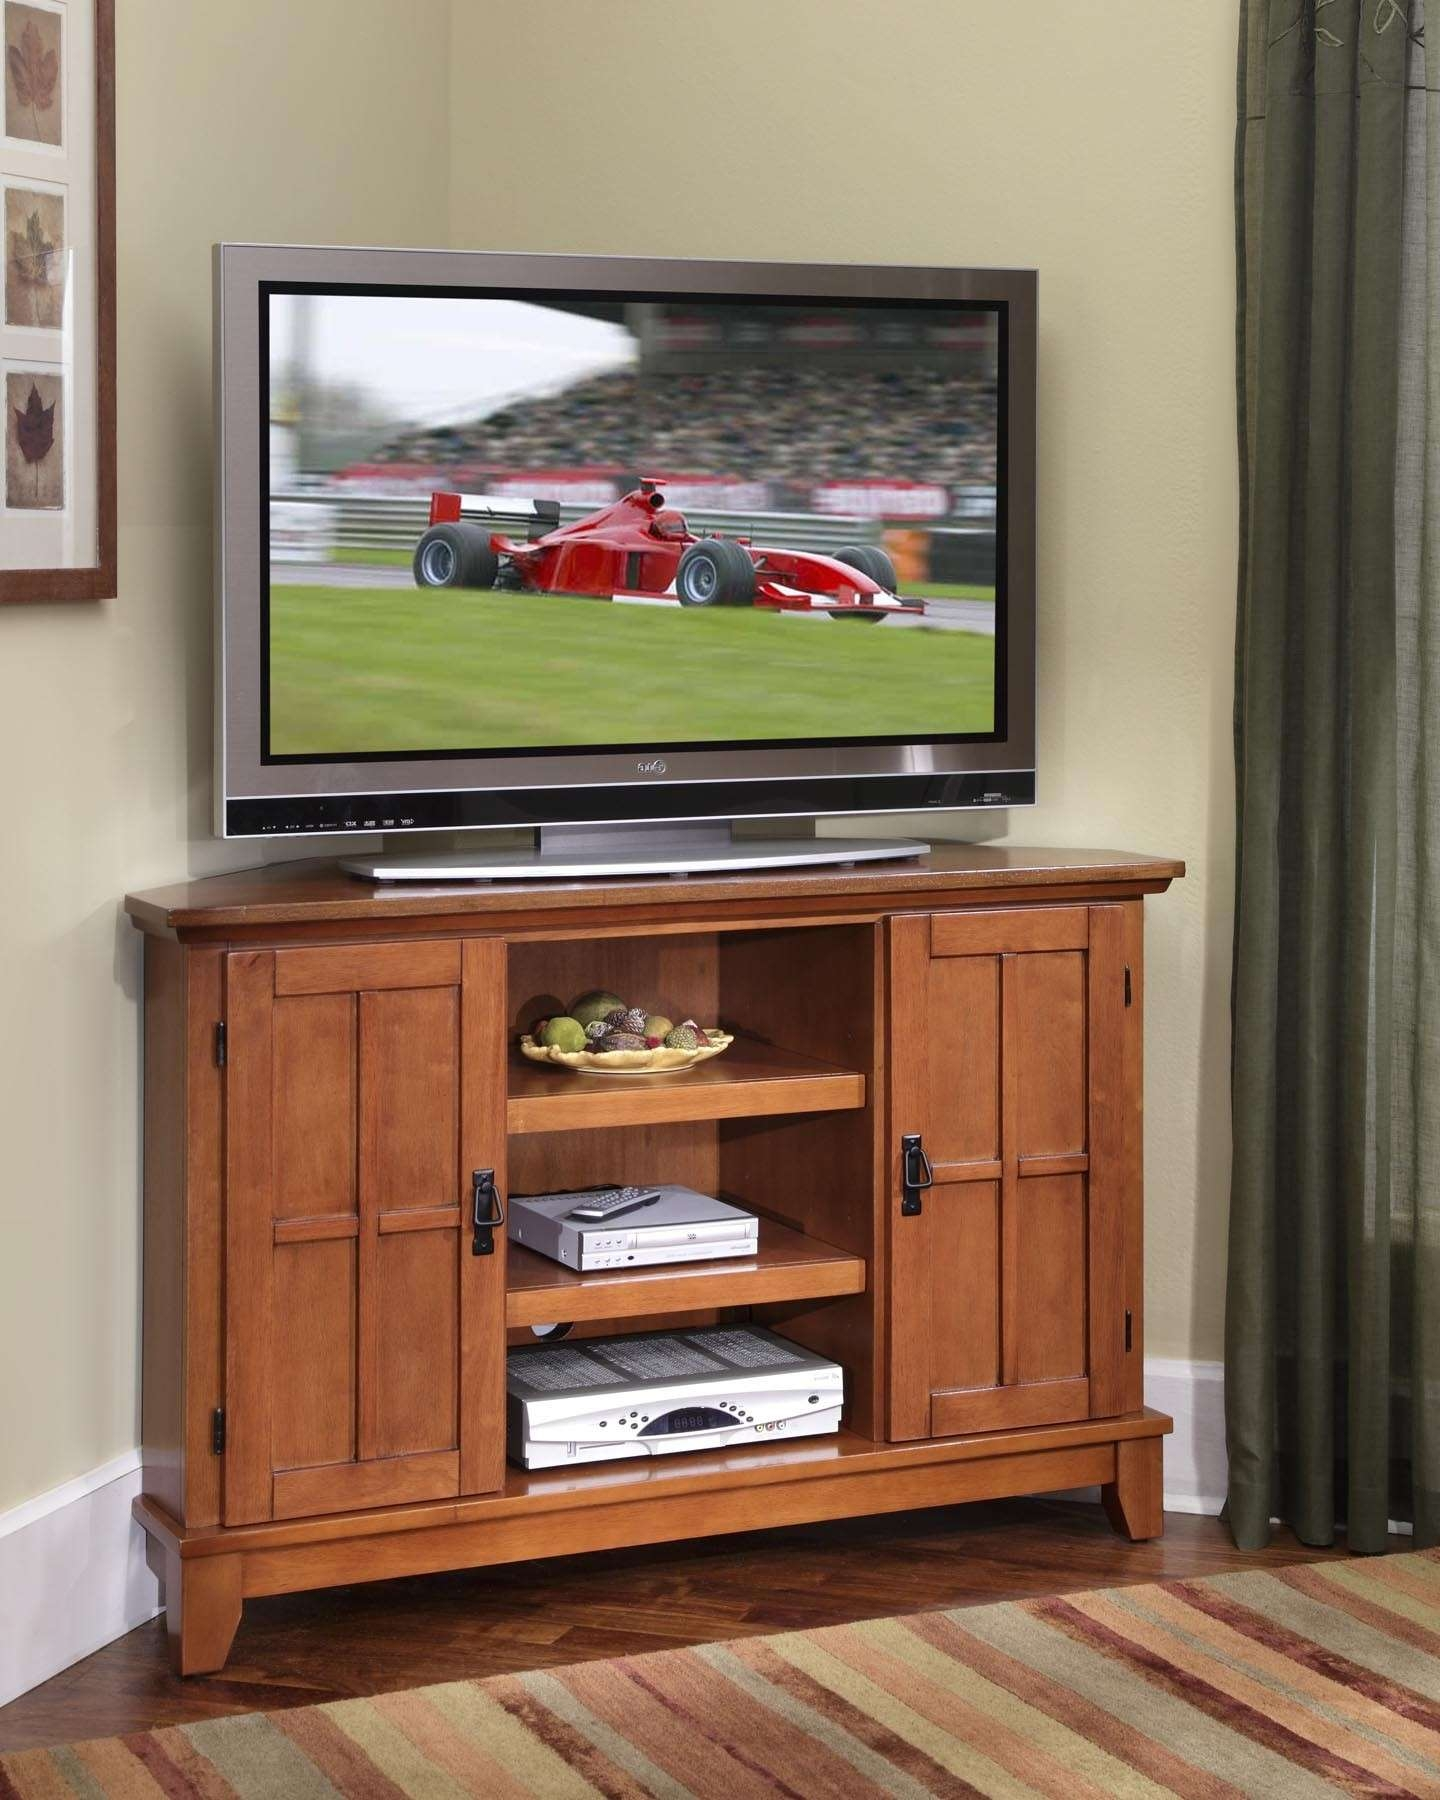 Home Styles 5180 07 Arts Crafts Cottage Oak Corner Tv Stand Pertaining To Triangular Tv Stands (View 9 of 15)